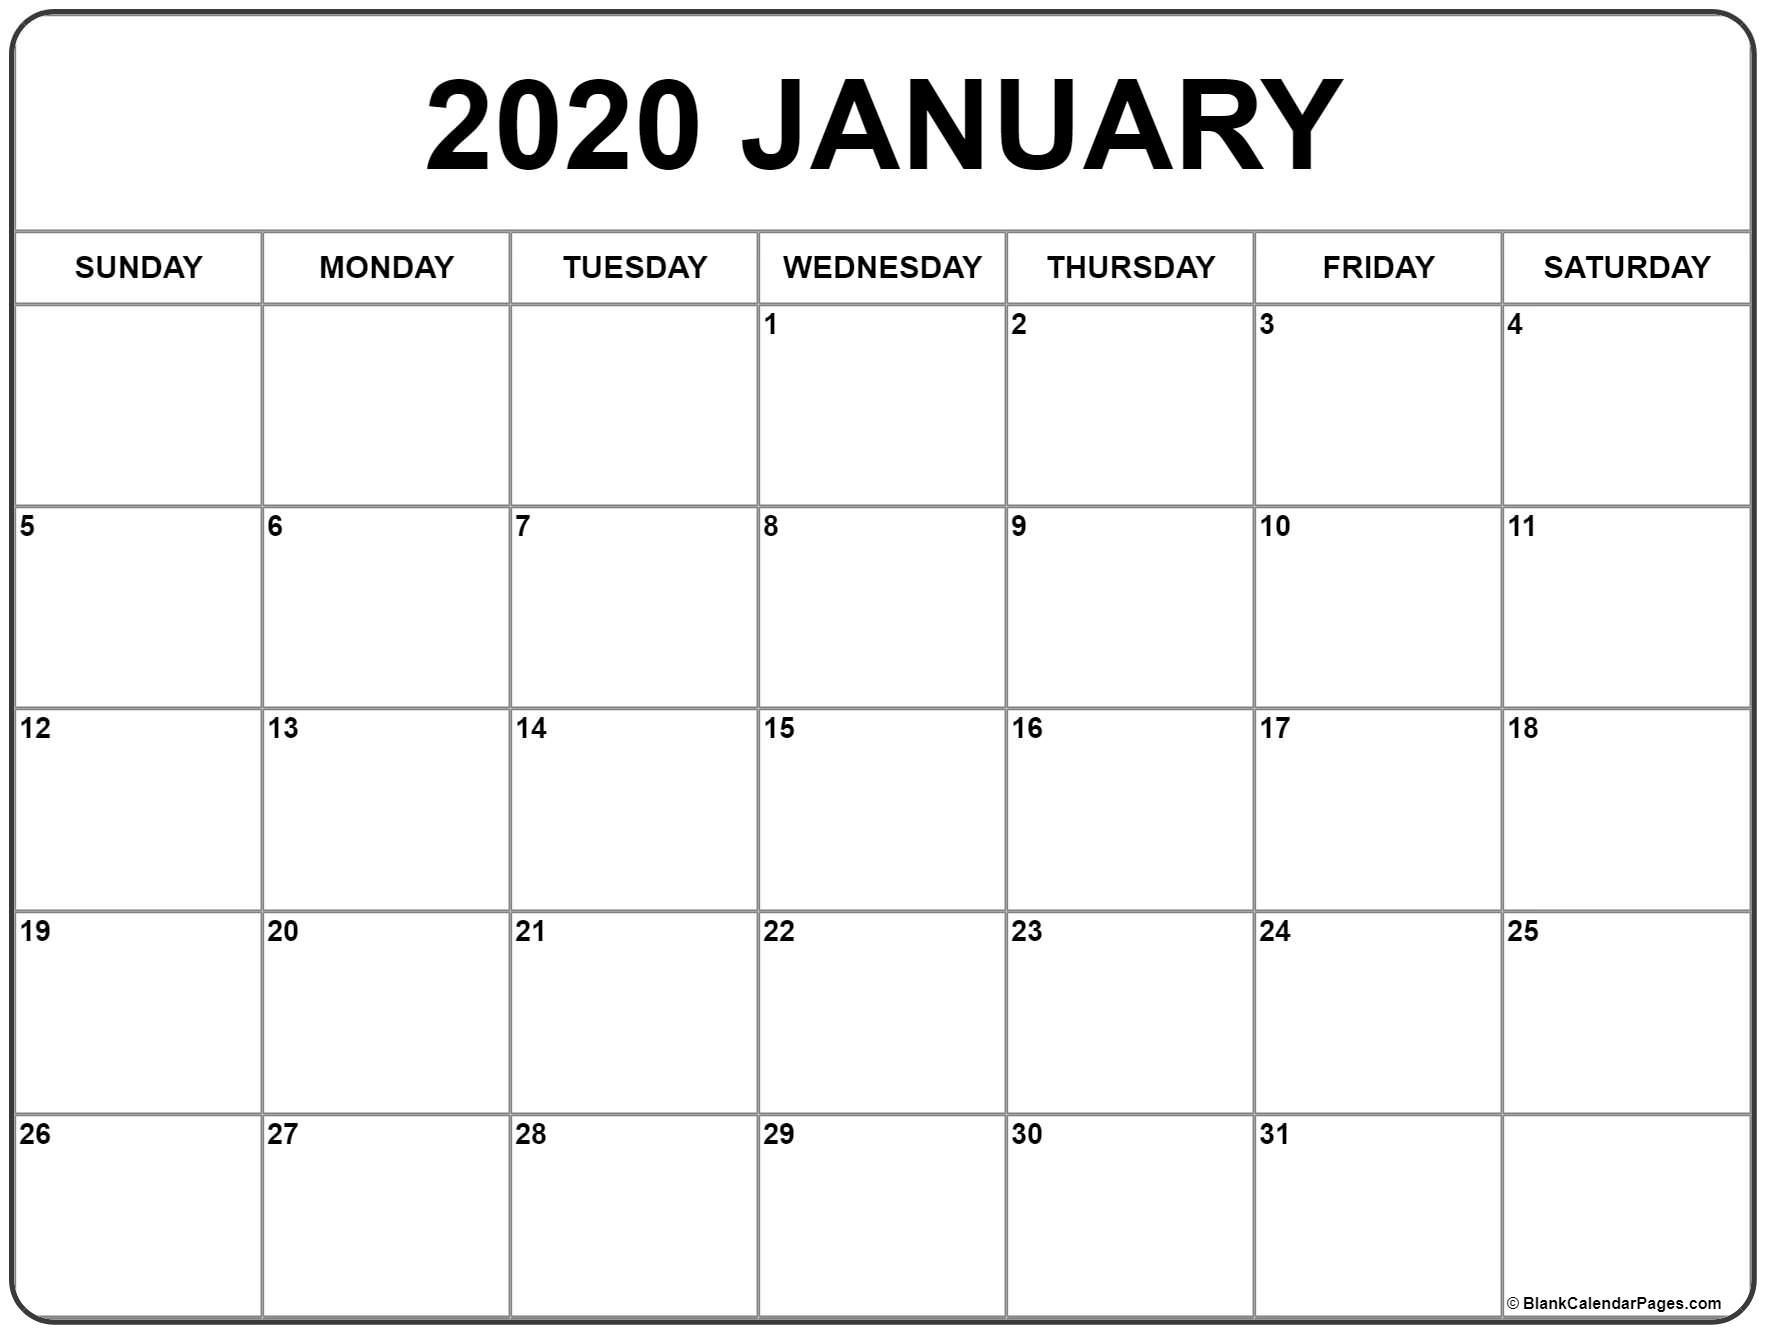 January 2020 Calendar | Free Printable Monthly Calendars  Printable Calendar Monthly 2020 Free